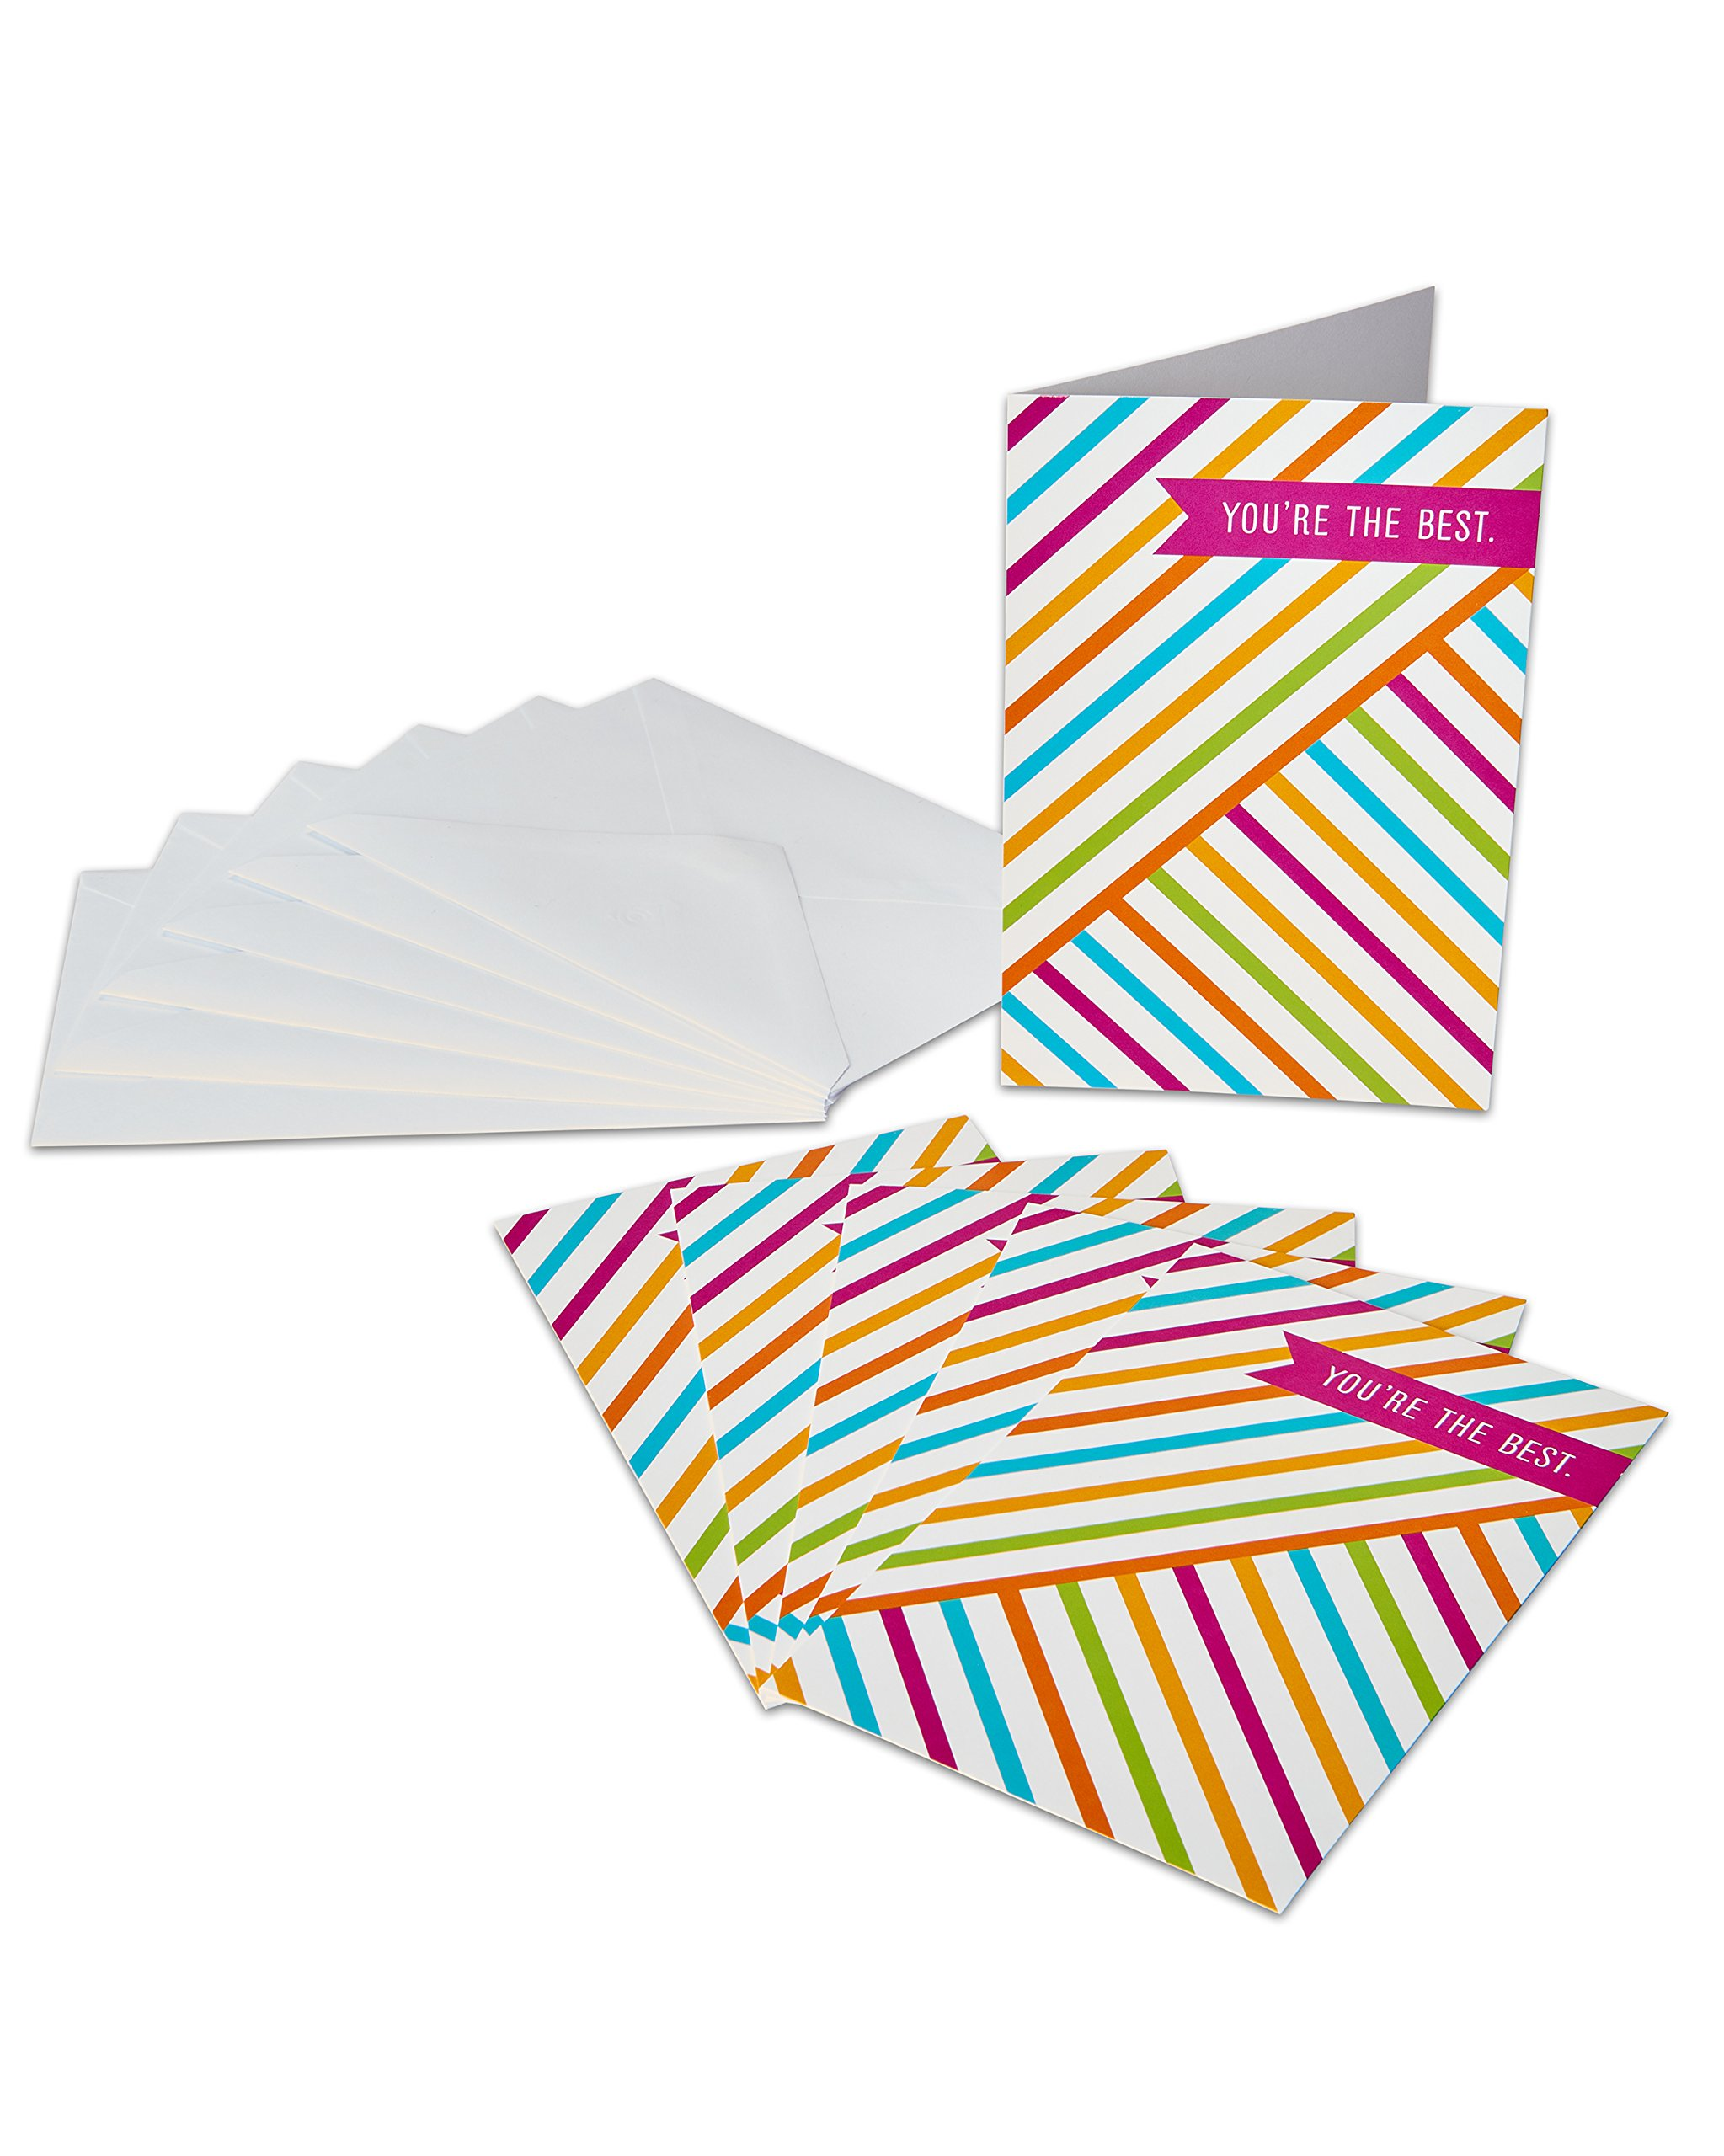 American Greetings Thank You Card, You're The Best (6-Count)